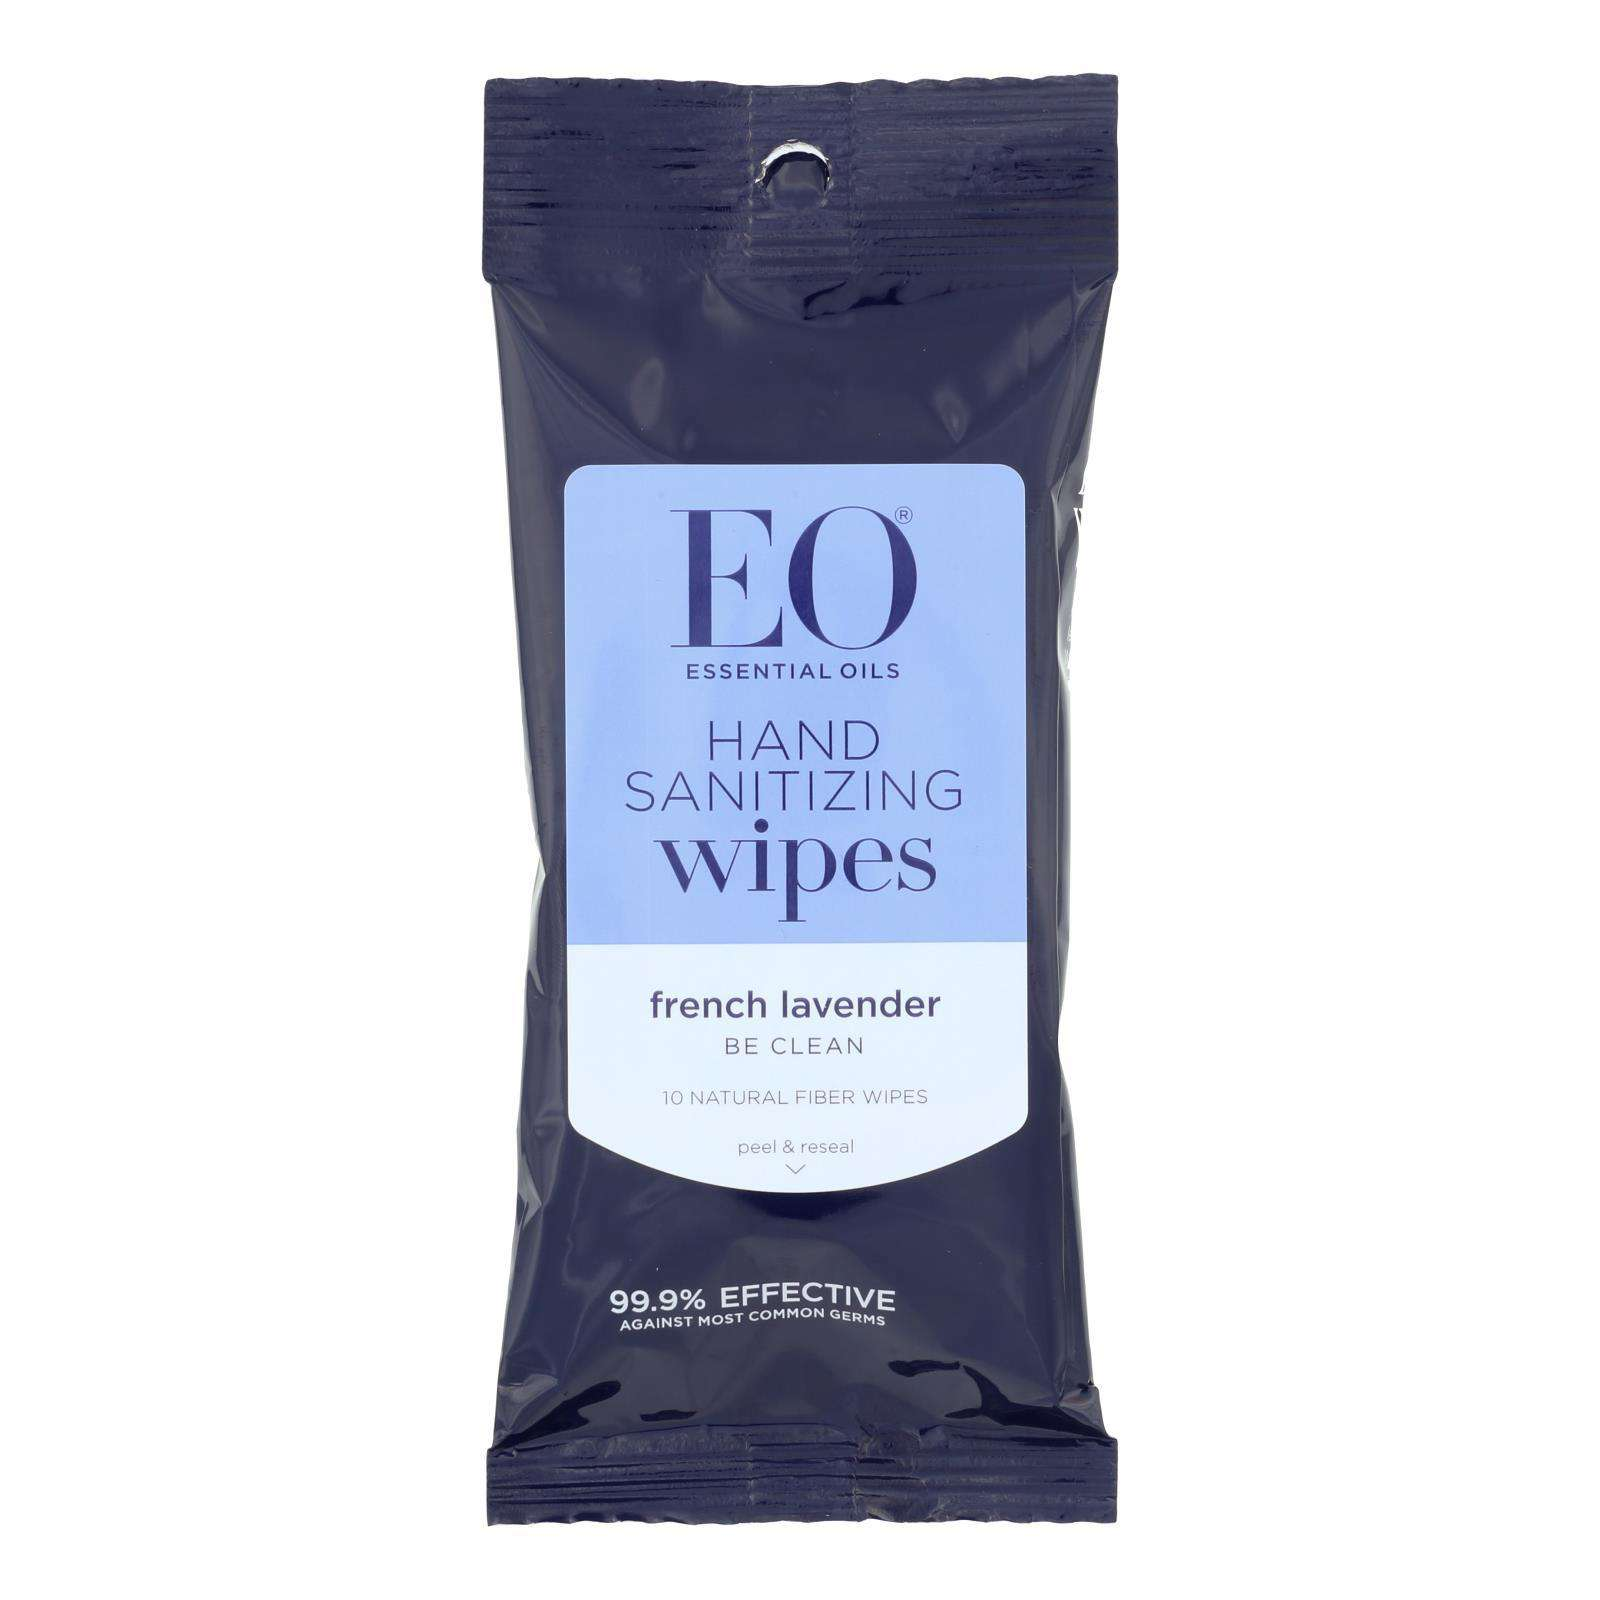 Eo Products - Hand Sanitizer Wipes Display Center - Lavender - Case Of 6 - 10 Pack - BeeGreen